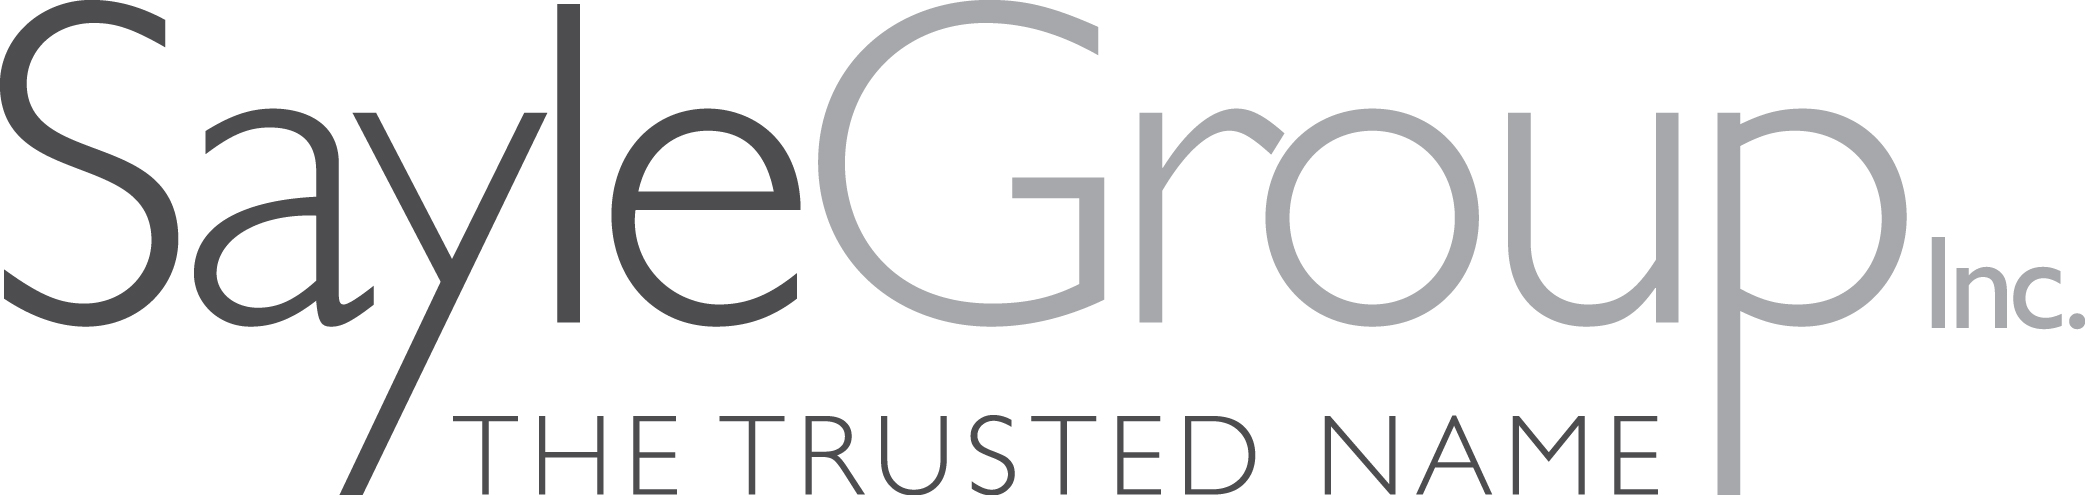 grey_logo_520x170_hi_res.jpg